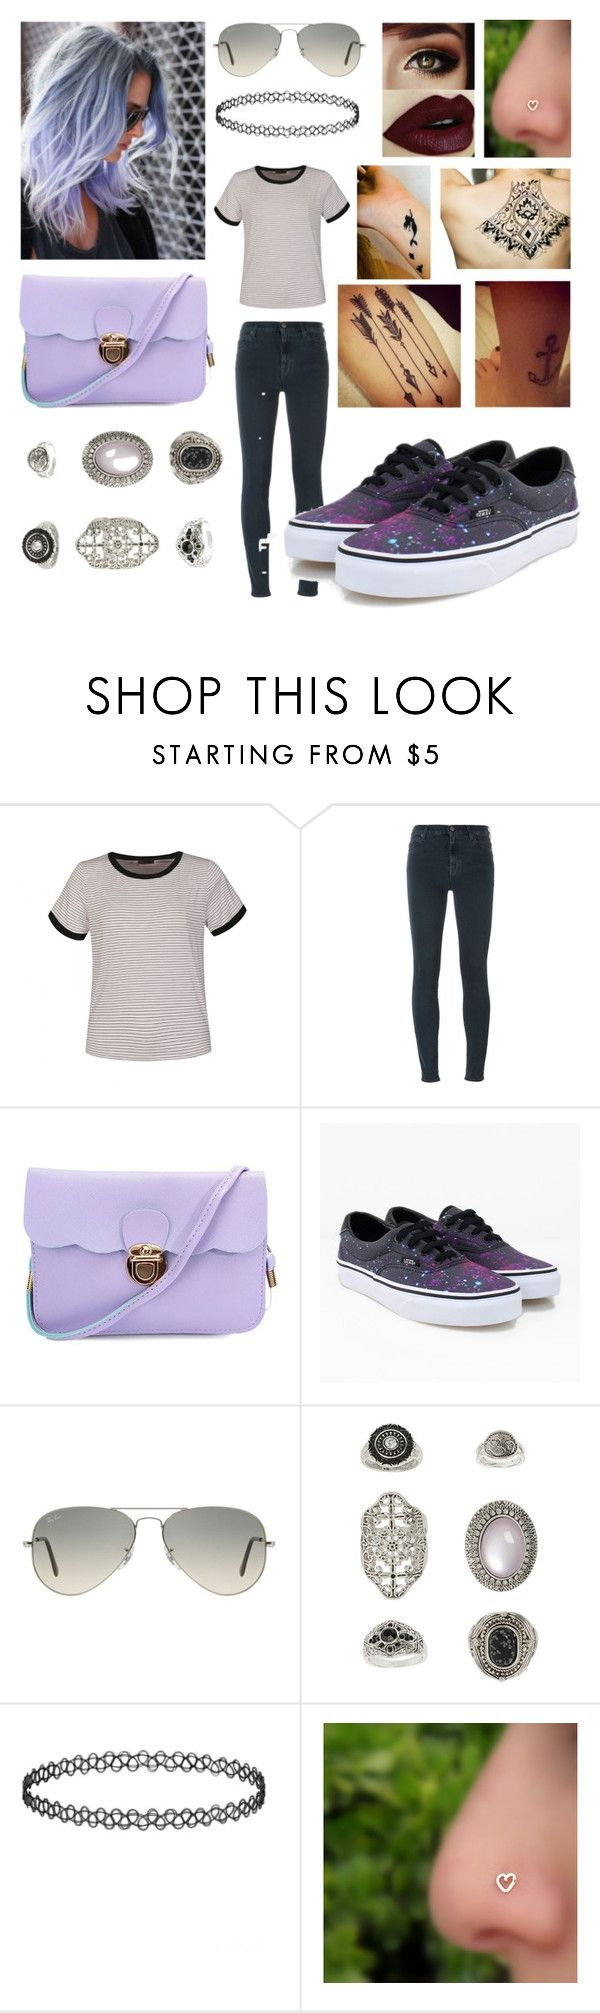 """Now that she's back in the atmosphere"" by annalaris on Polyvore featuring Ally Fashion, 7 For All Mankind, Vans, Ray-Ban, Topshop, Girl With the Temporary Tattoo, Disney, women's clothing, women's fashion and women"